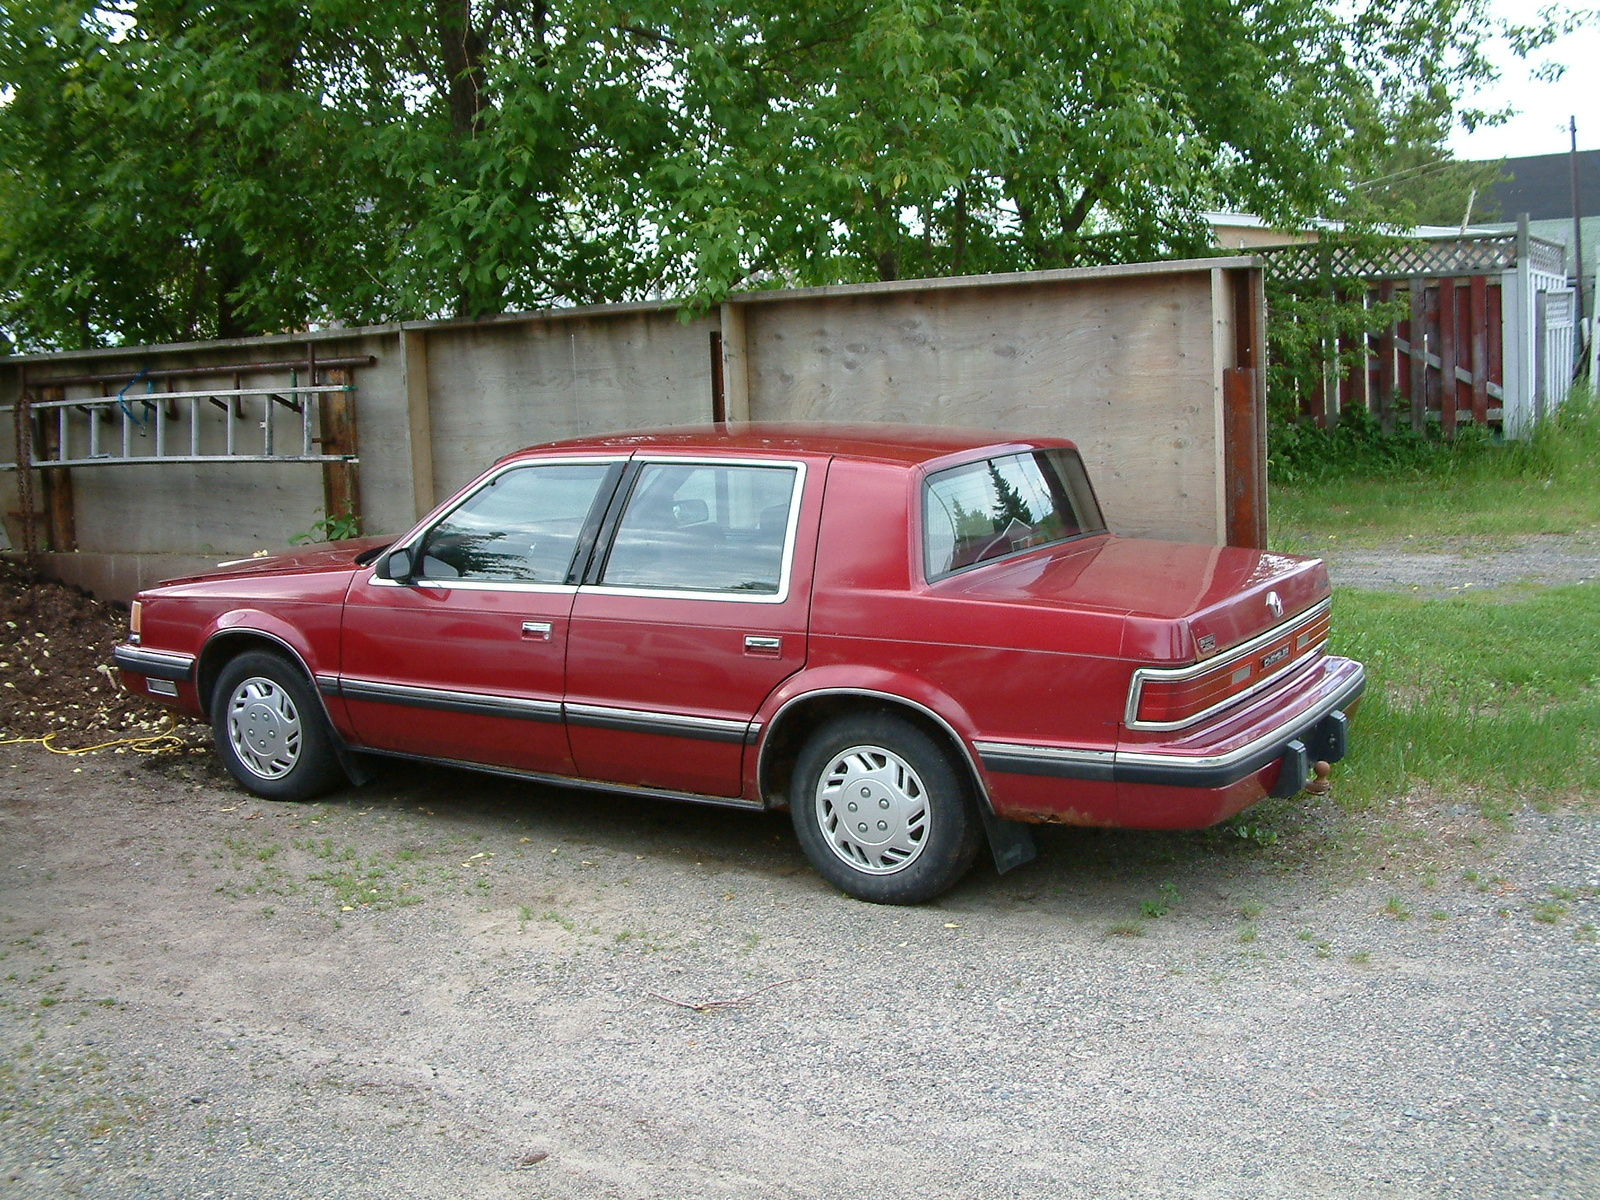 1990 Chrysler Dynasty picture